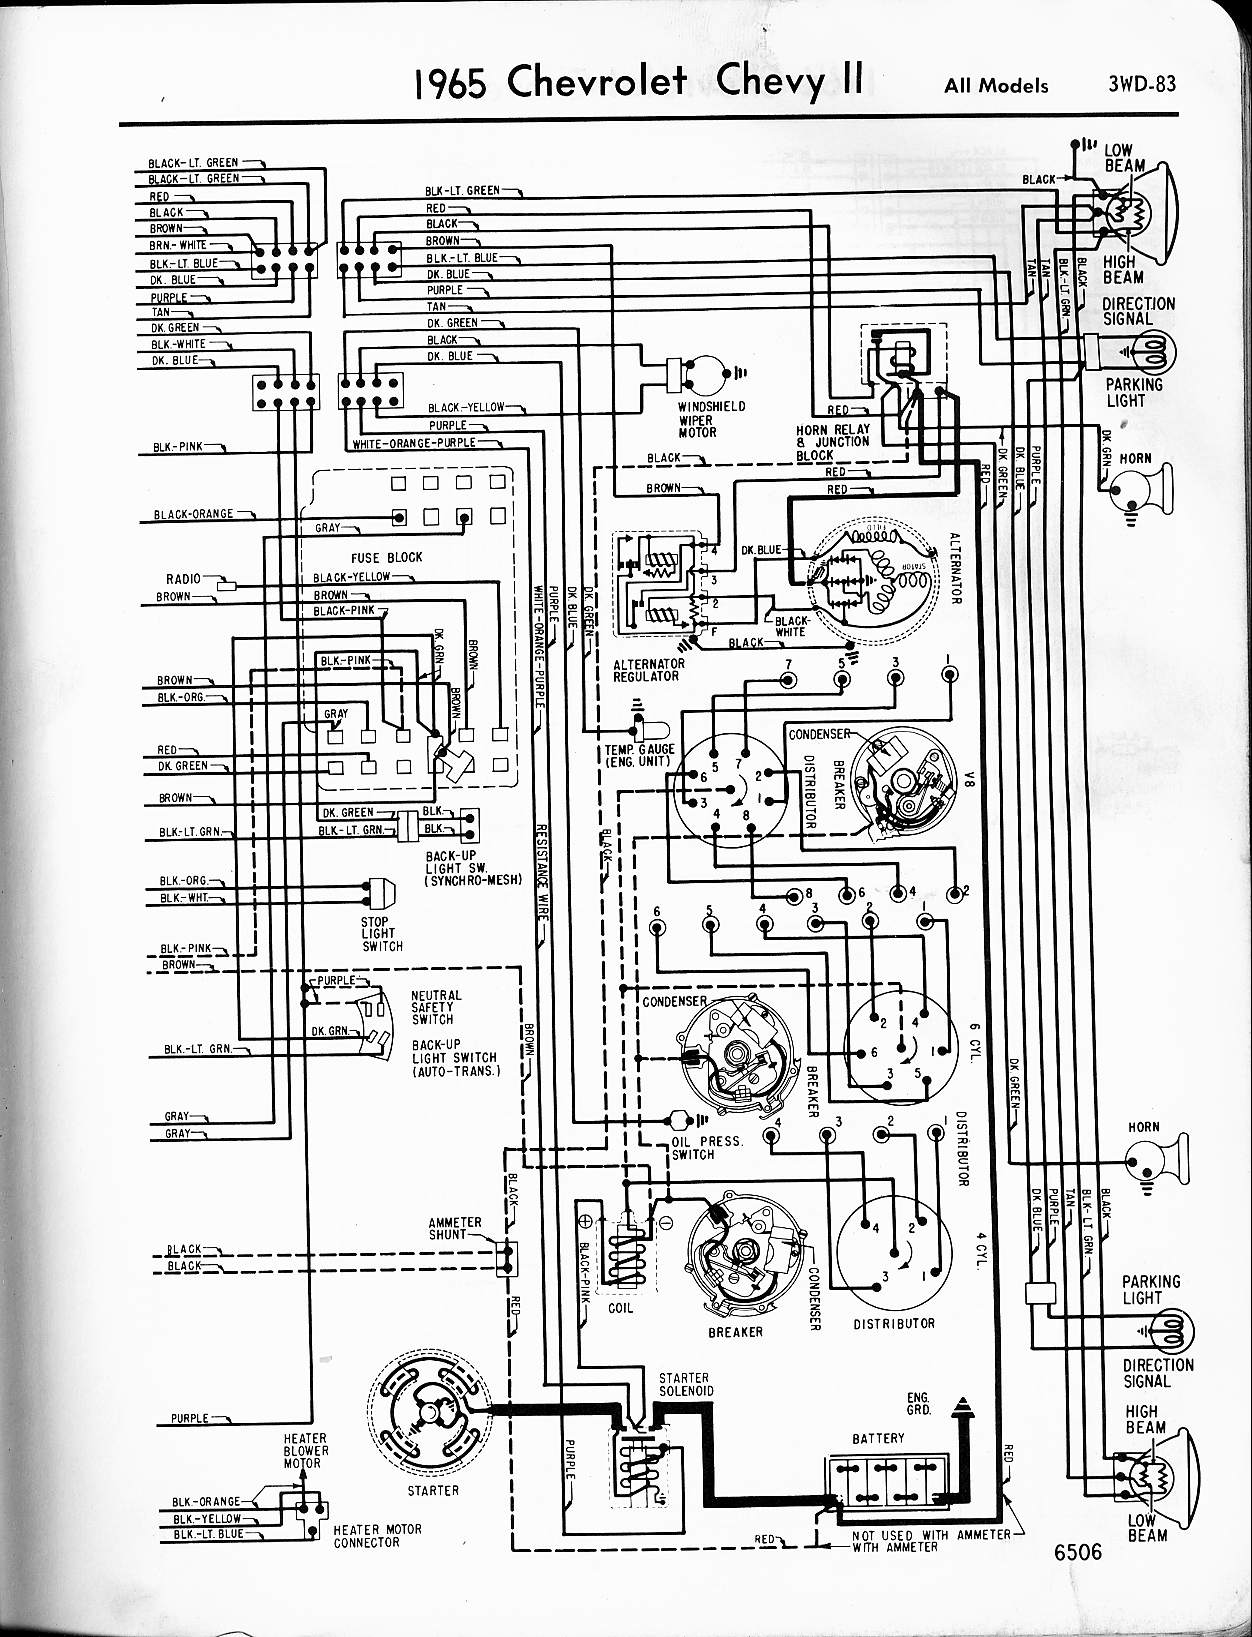 1964 chevy truck turn signal wiring diagram wiring diagram third level1966 c10 wiring diagram wiring diagram todays 1967 chevy truck wiring diagram 1964 chevy truck turn signal wiring diagram